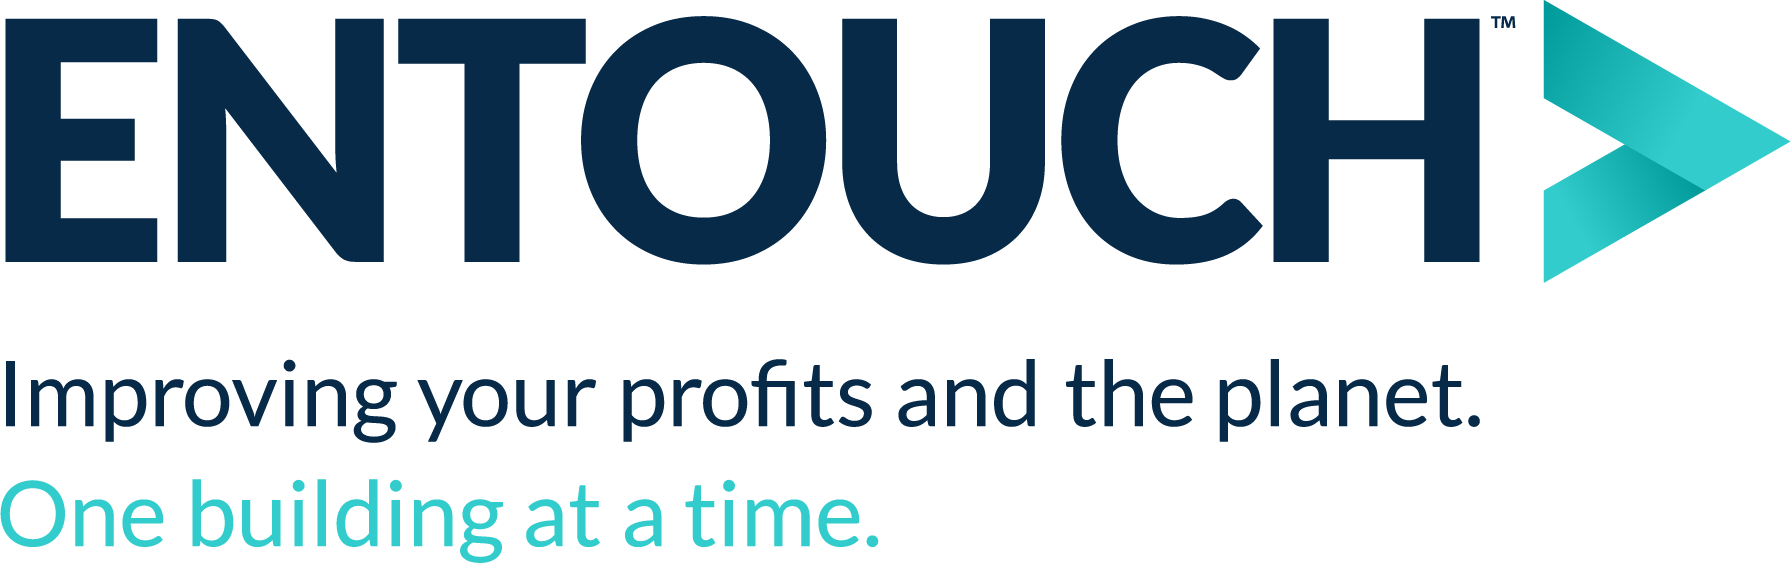 entouch_logo.PNG